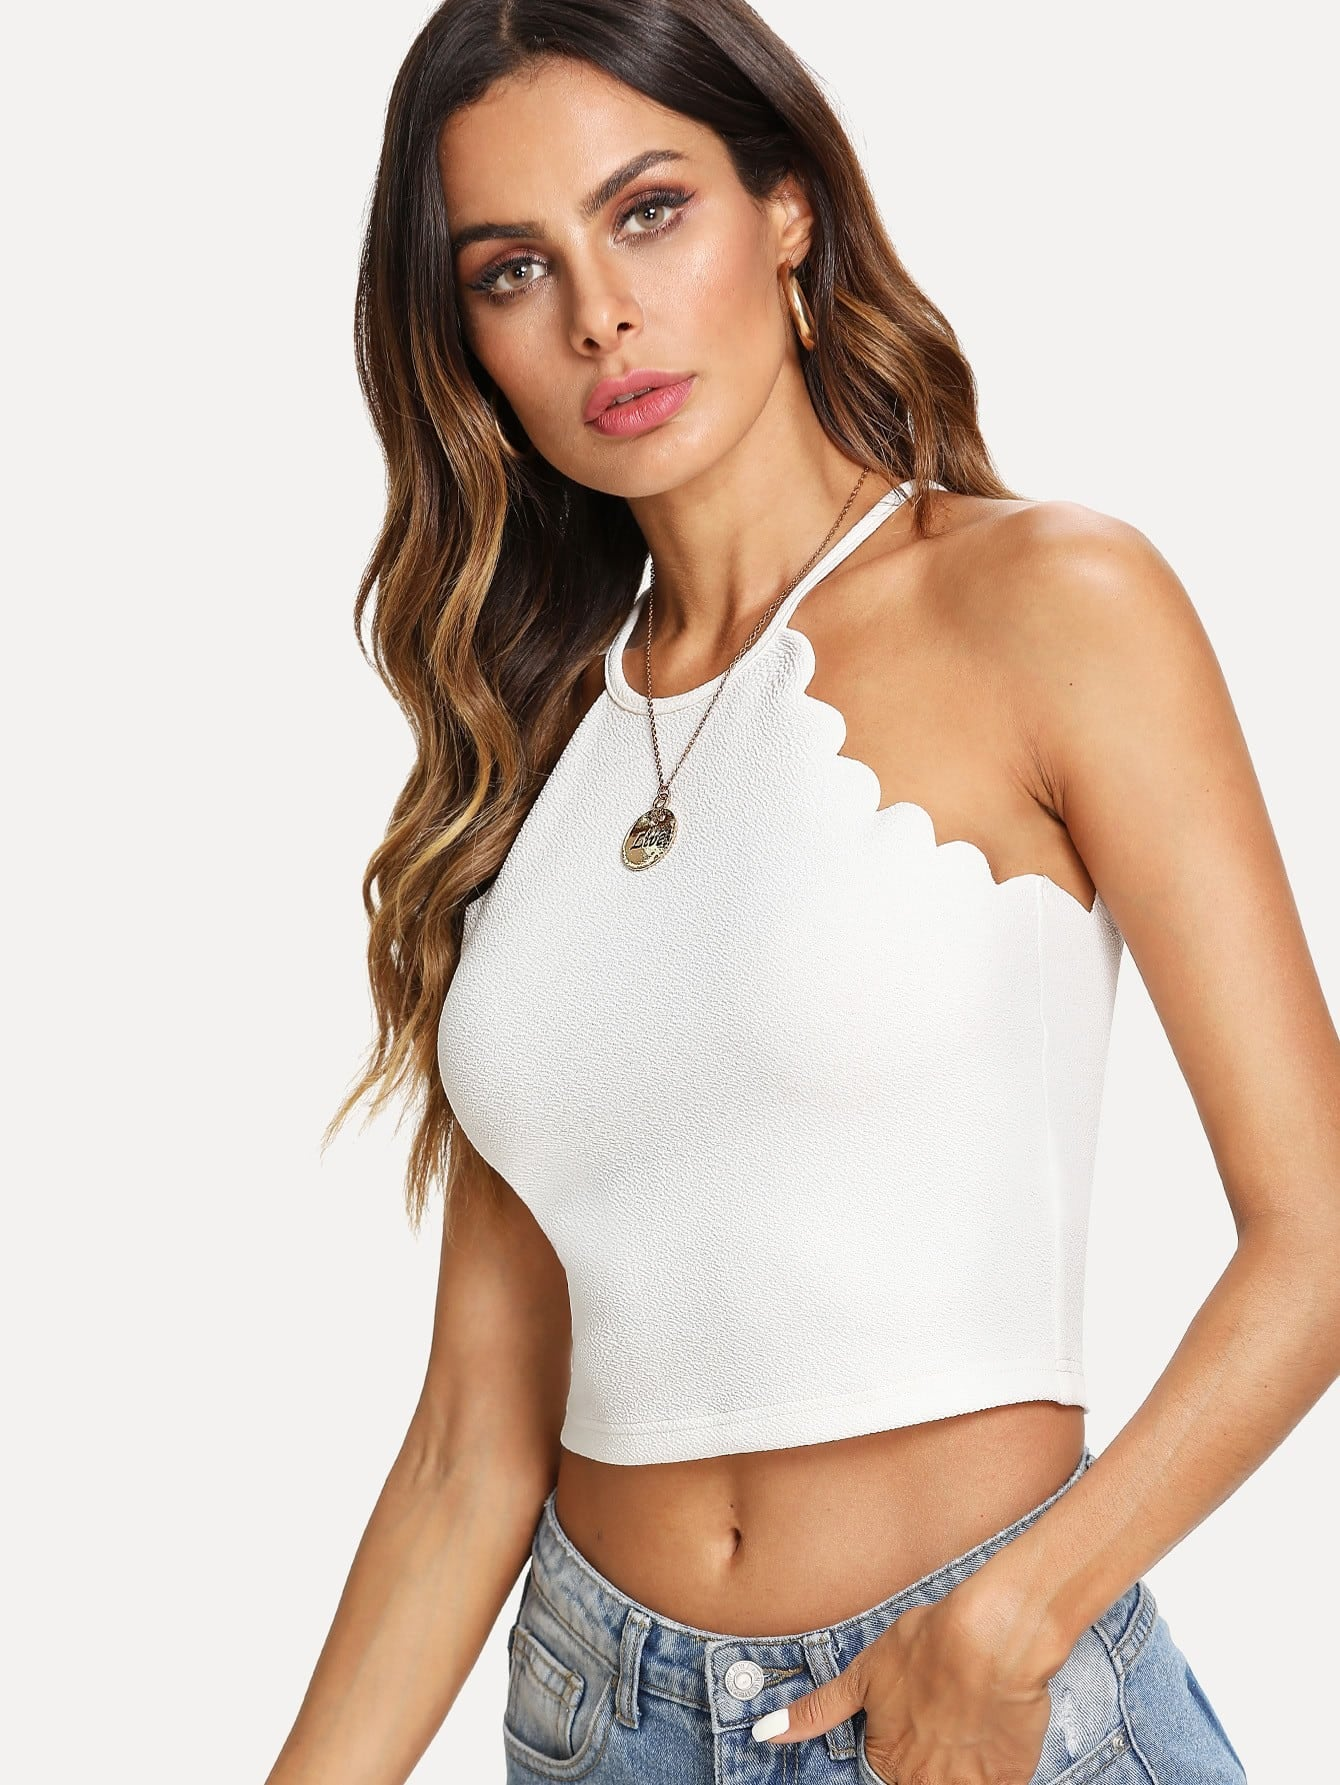 Scallop Trim Halter Top scallop edge halter top